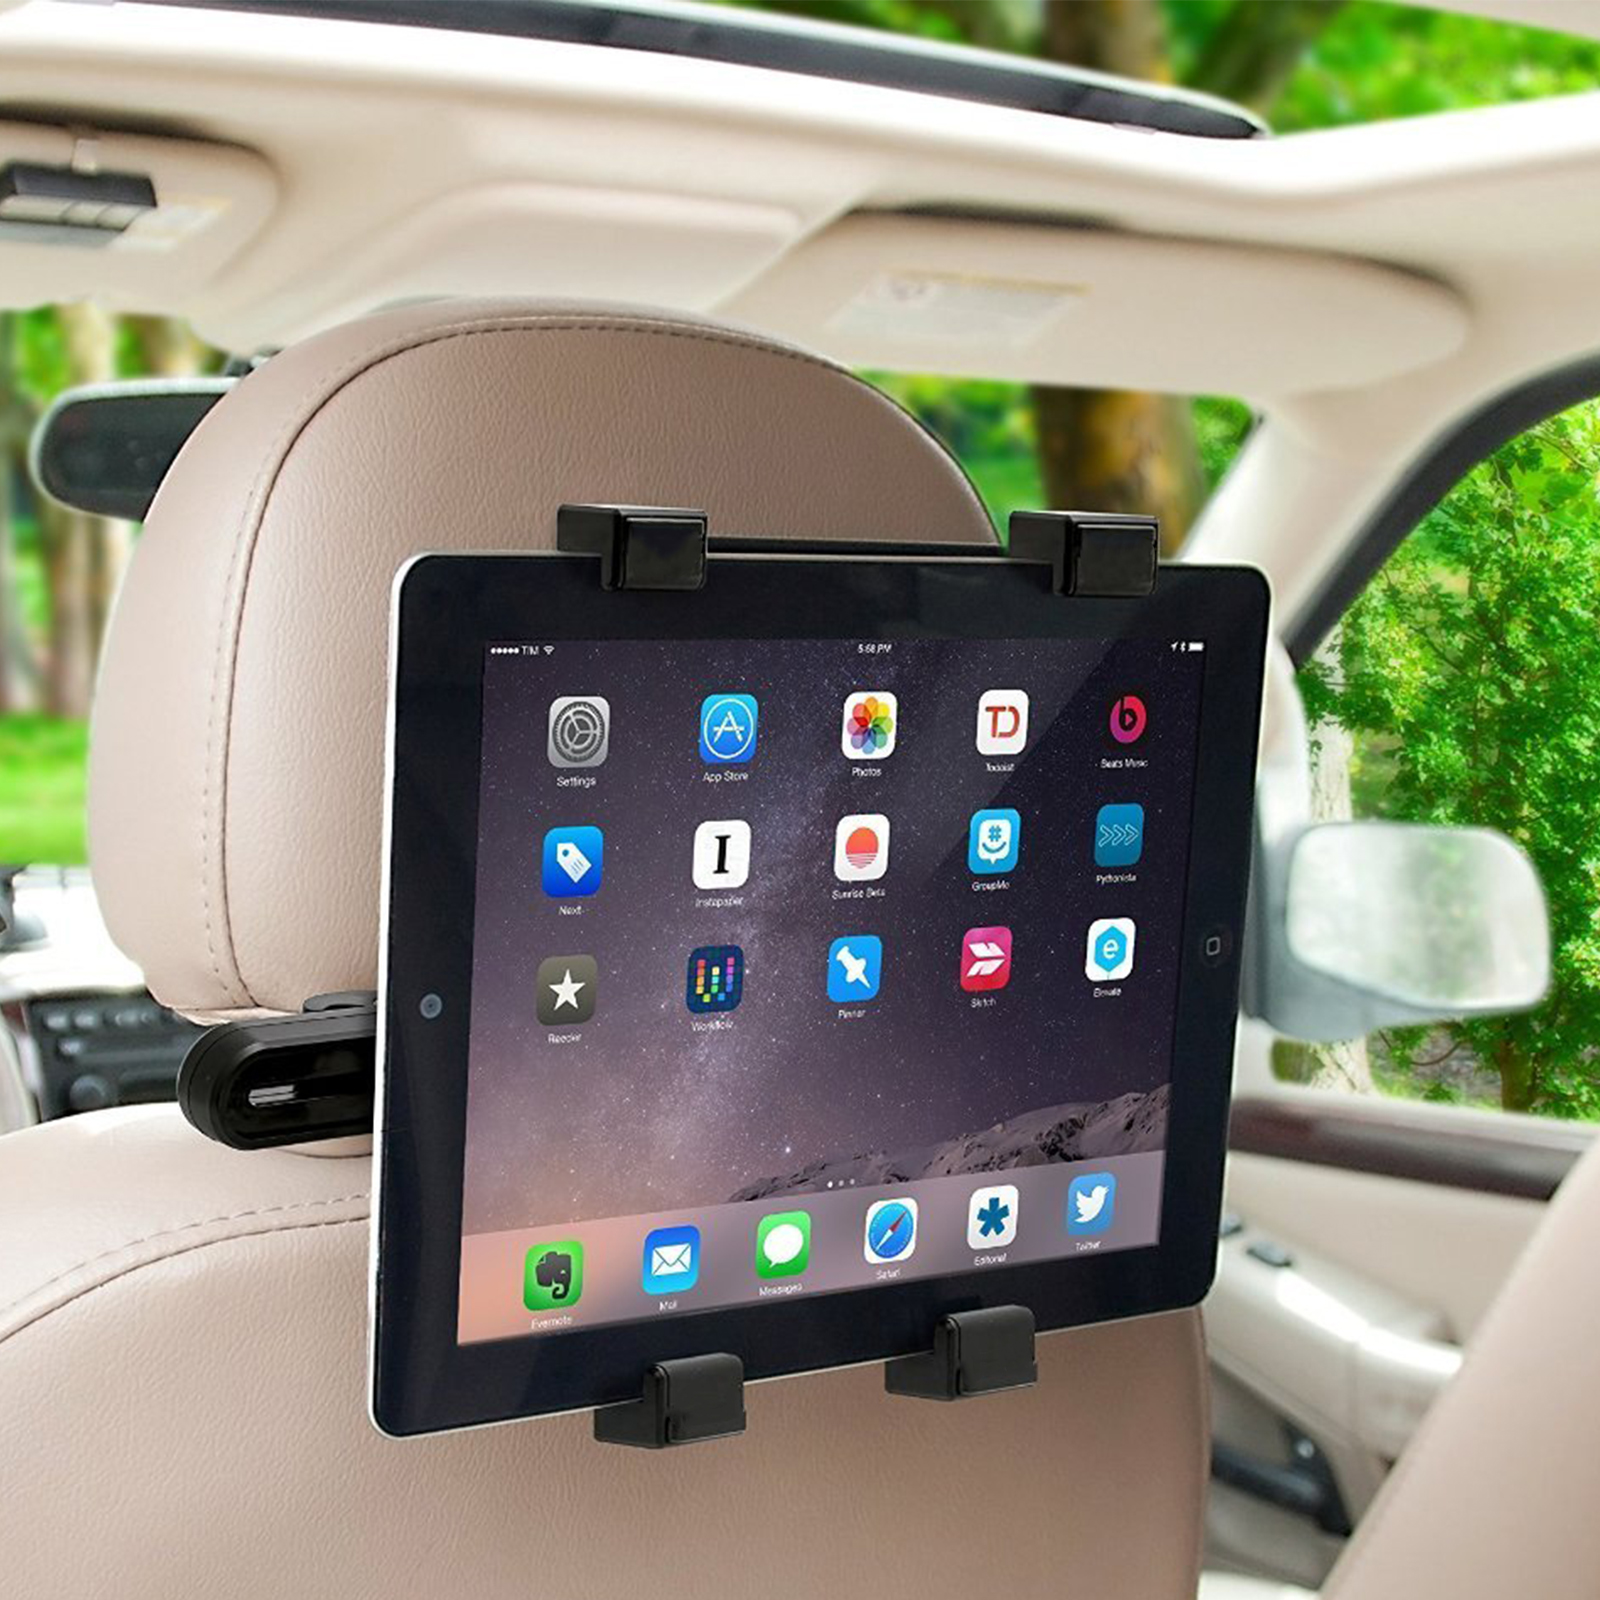 TSV Tablet Car Seat Headrest Mount, Car iPad Tablet Holder Universal Mount Holder for iPad, iPad Pro Mini, Samsung Galaxy, Fits all 7 to 11 inch Smartphones and Tablets